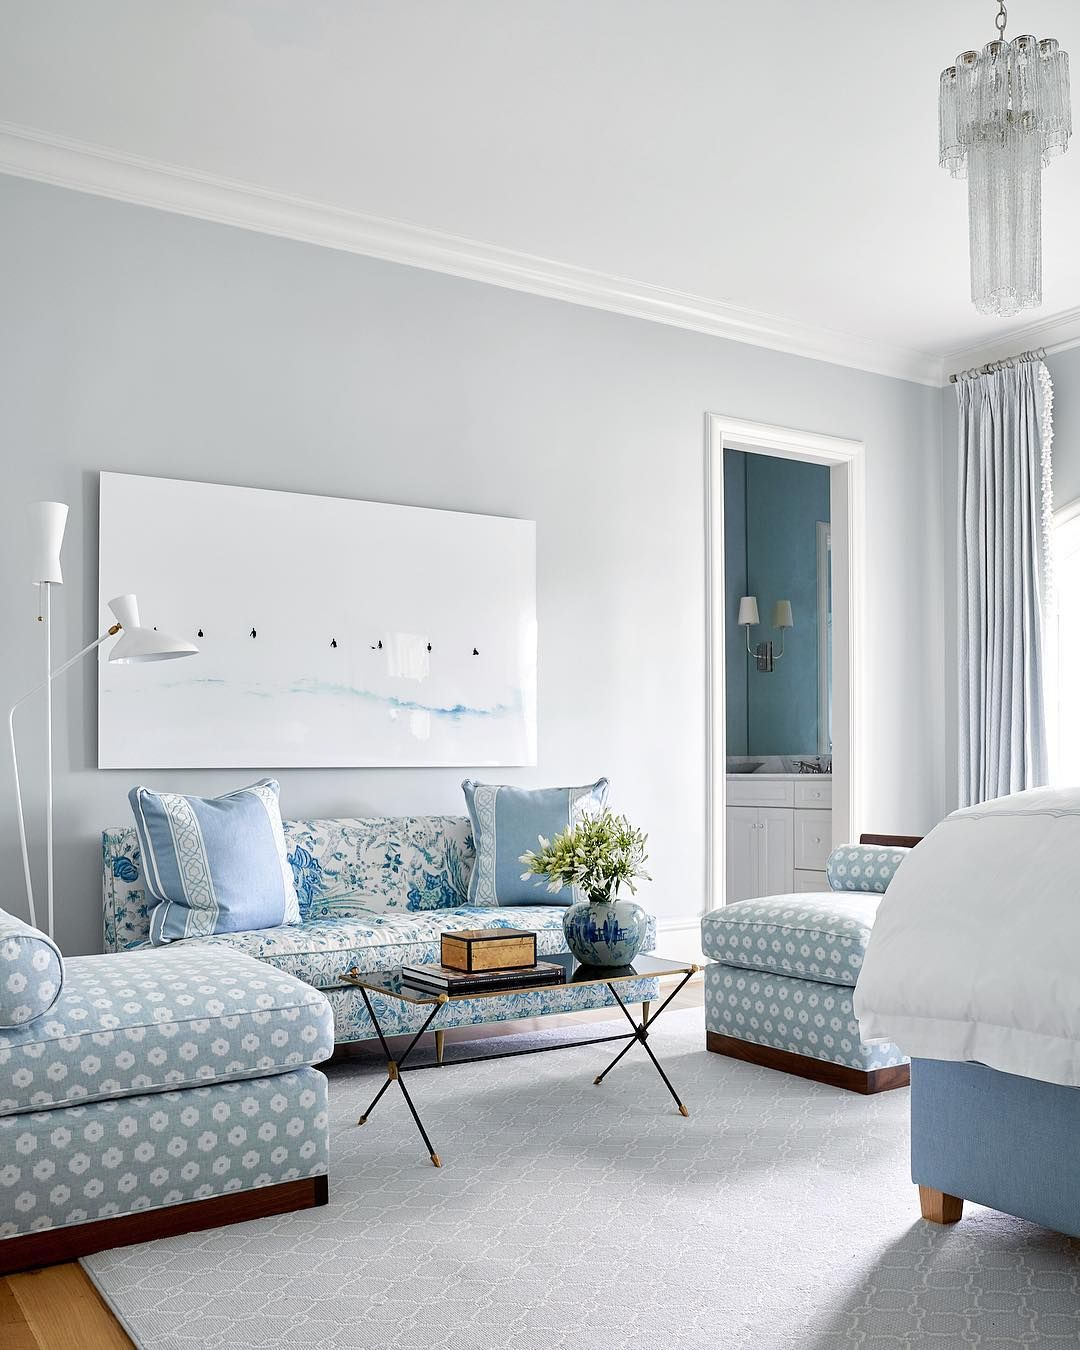 Blue And White Bedroom Design By Collins Interiors Surfer P